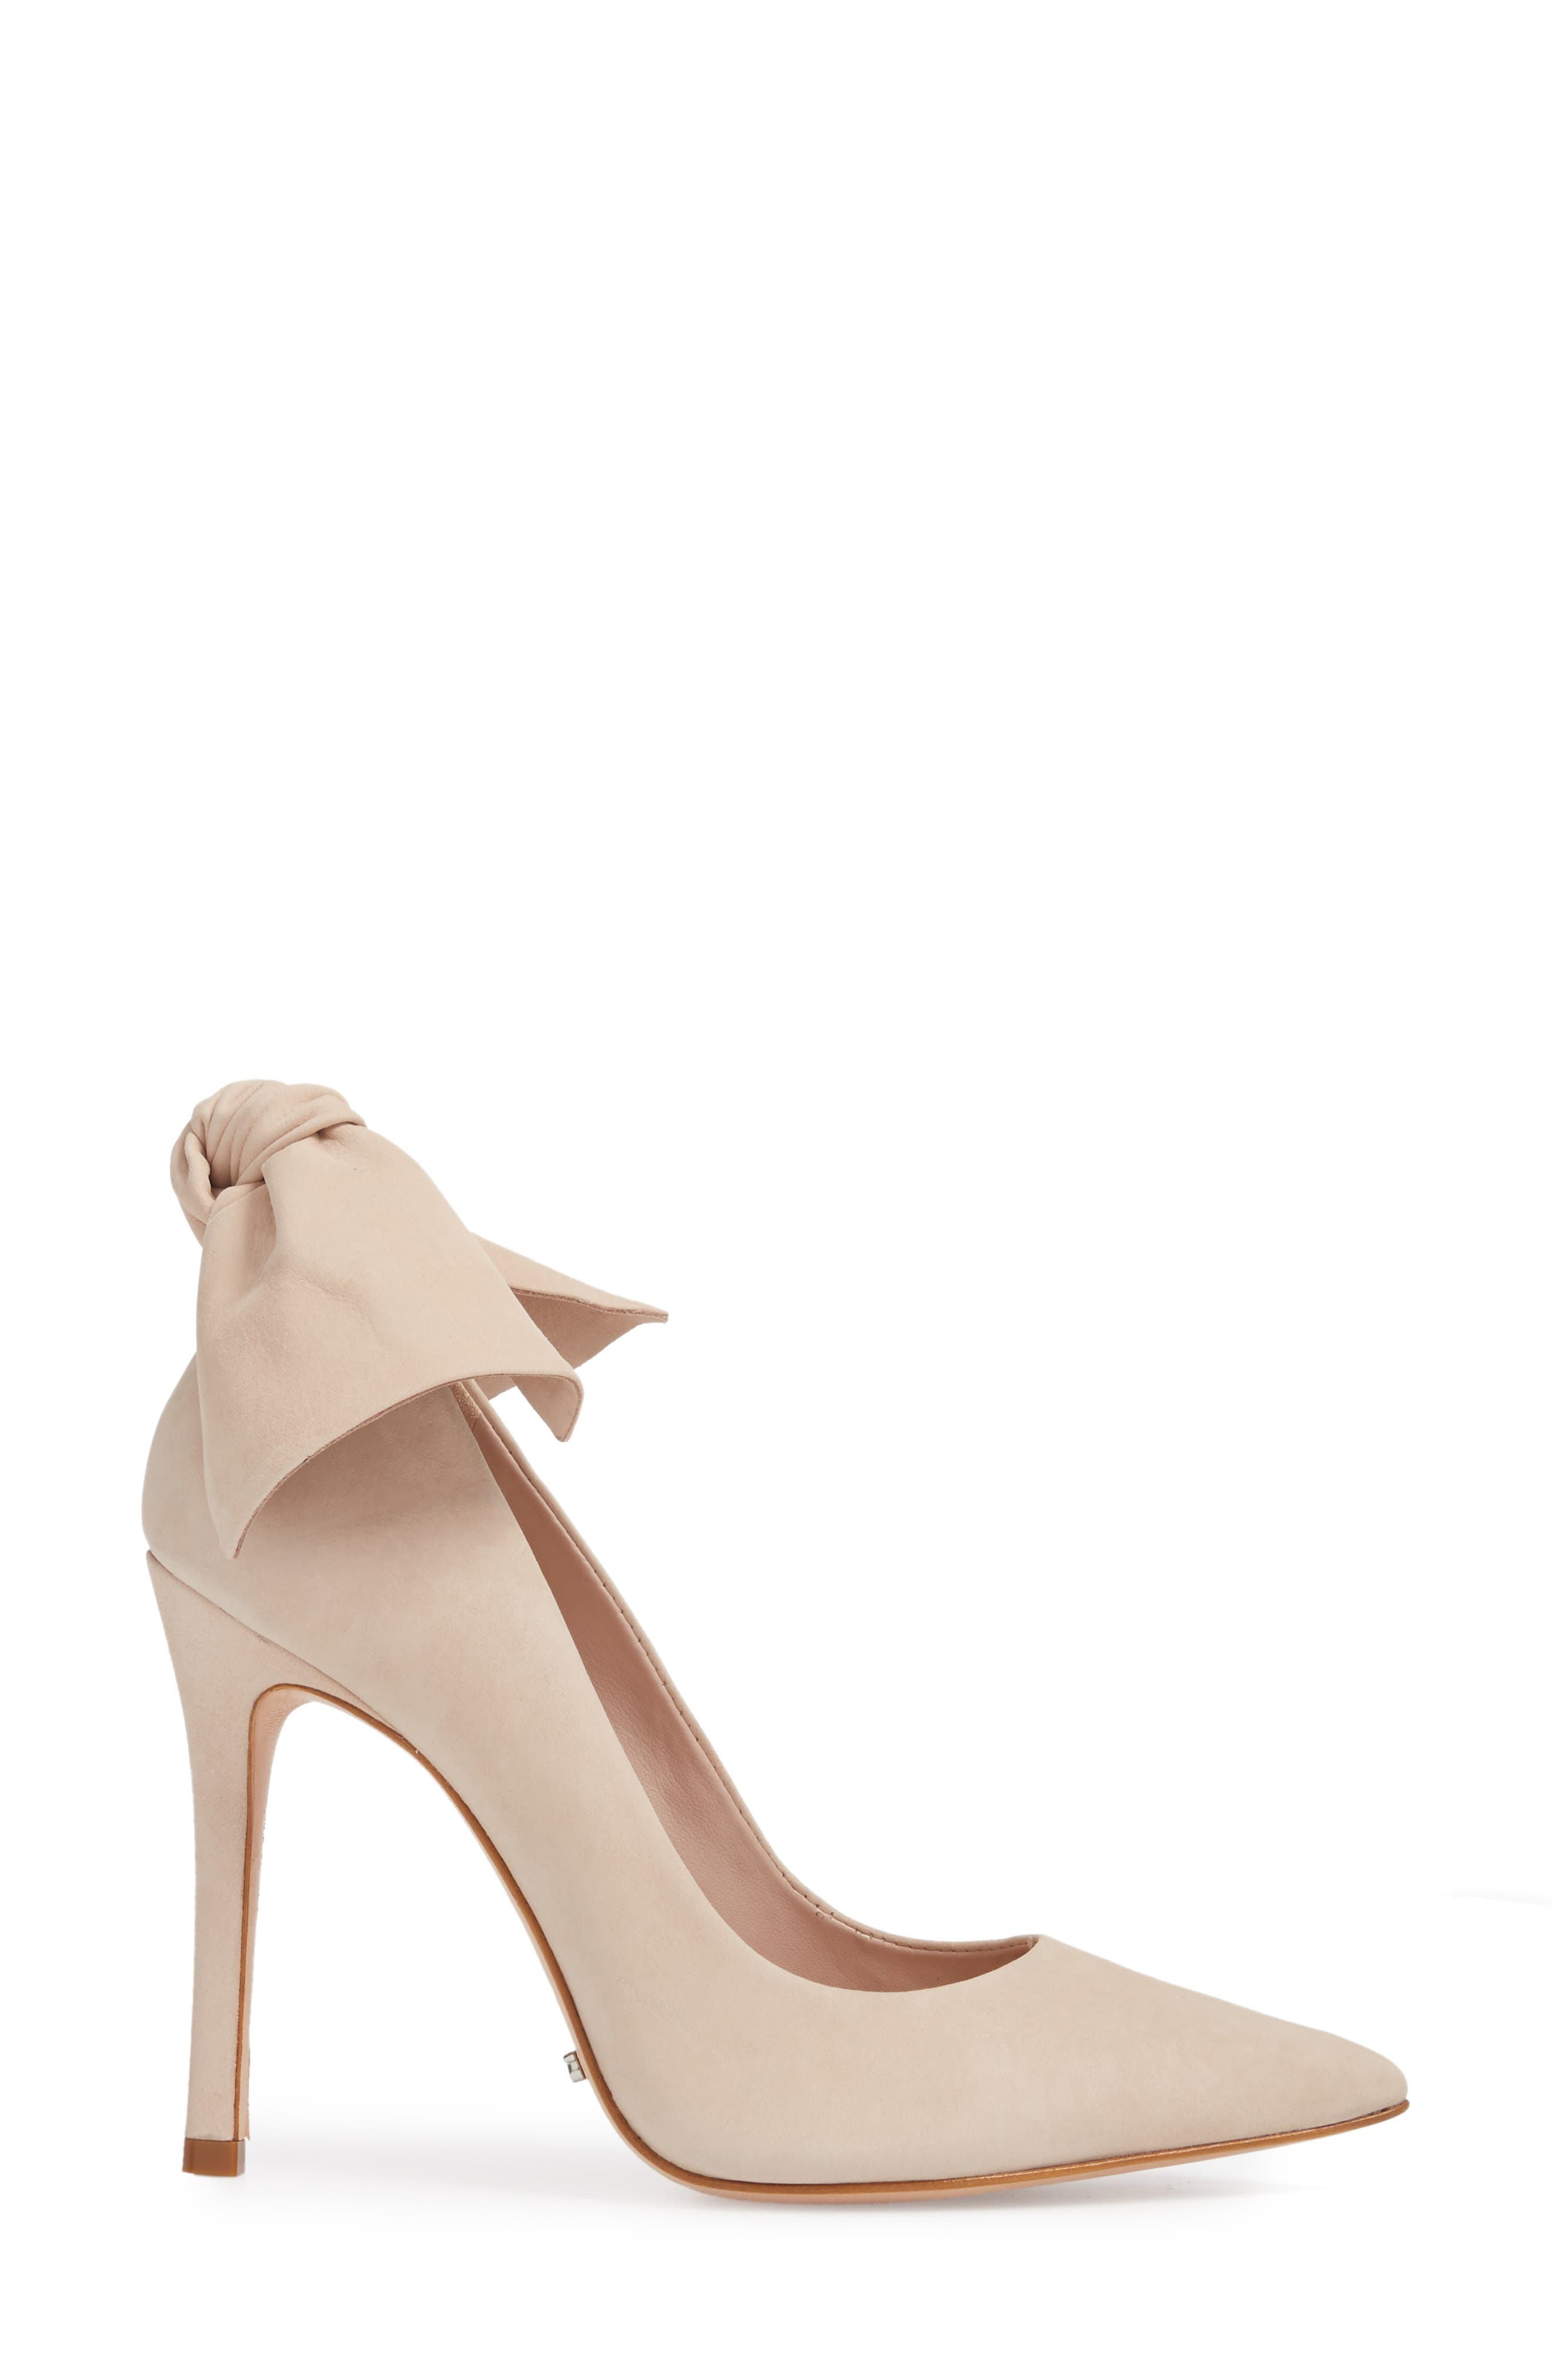 Blasiana Bow Pump,                             Alternate thumbnail 3, color,                             Bellini Leather